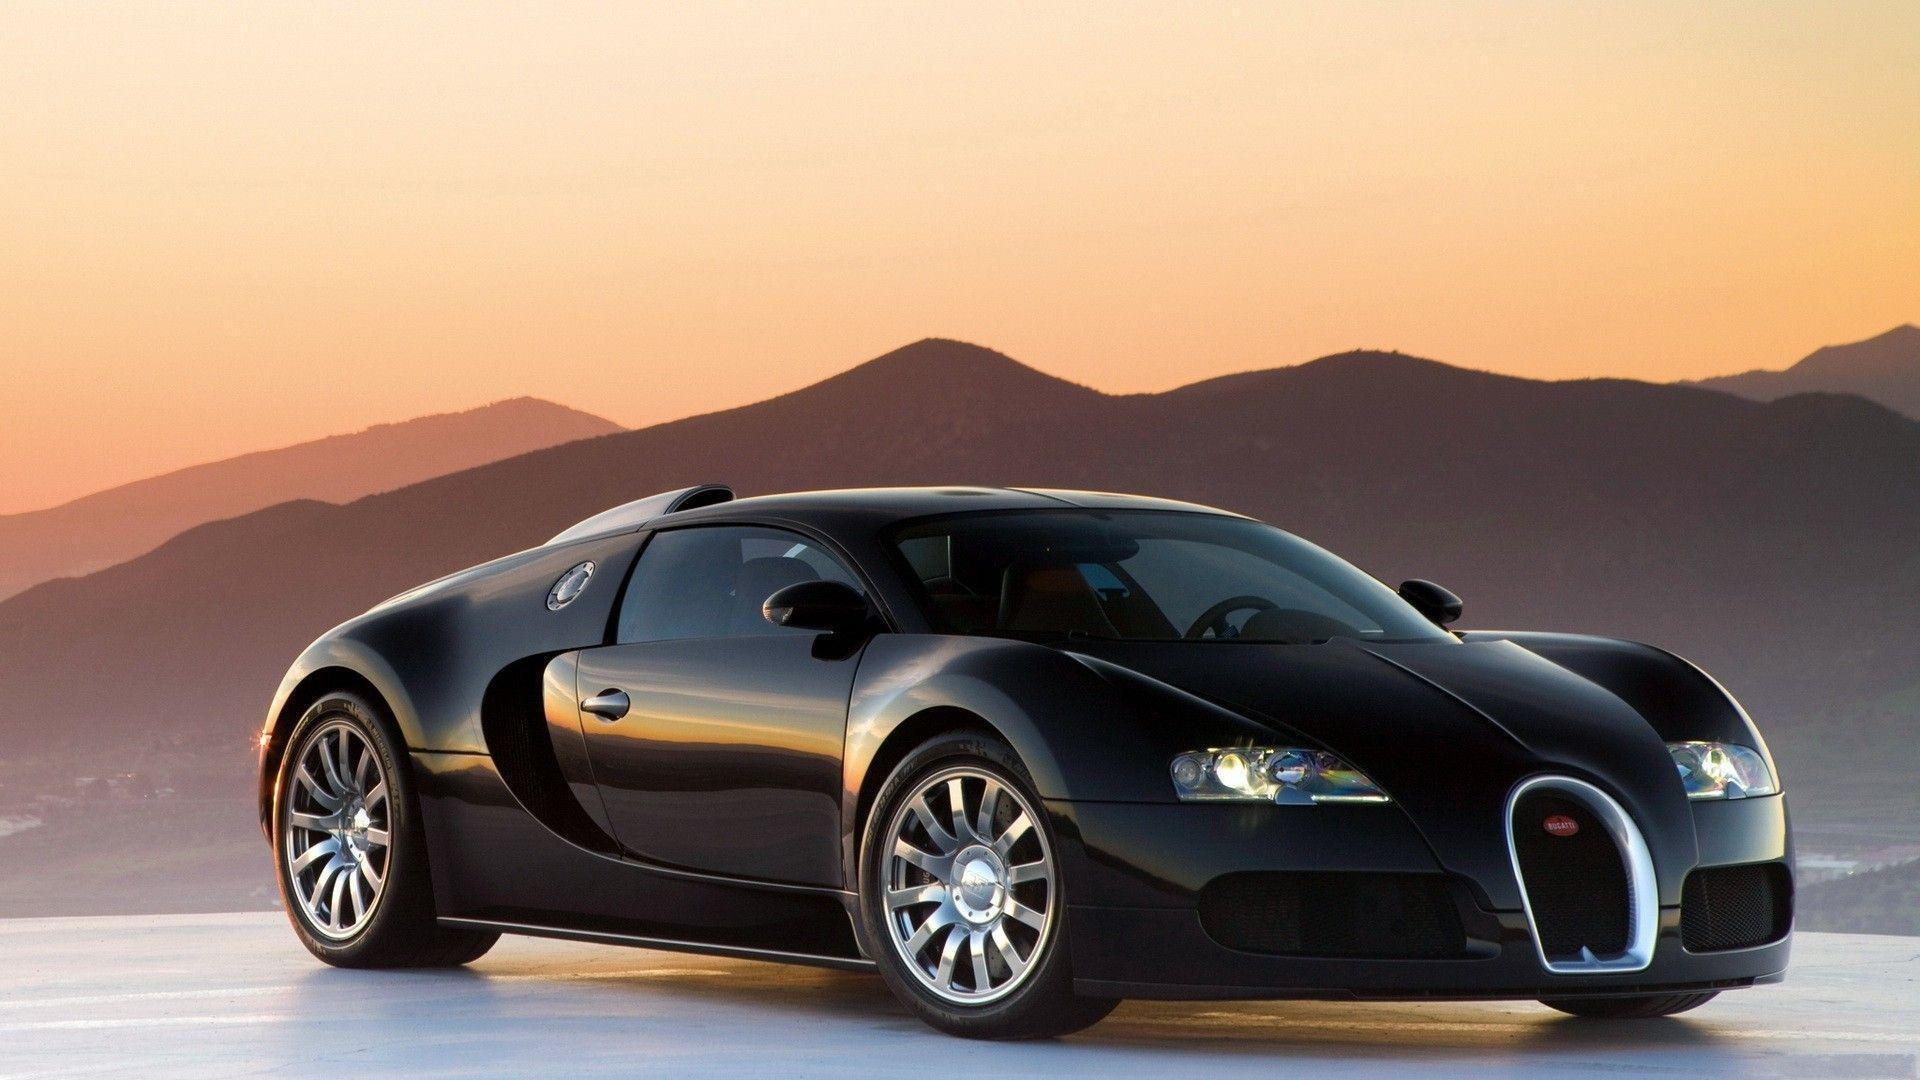 bugatti veyron hd wallpapers wallpaper cave. Black Bedroom Furniture Sets. Home Design Ideas